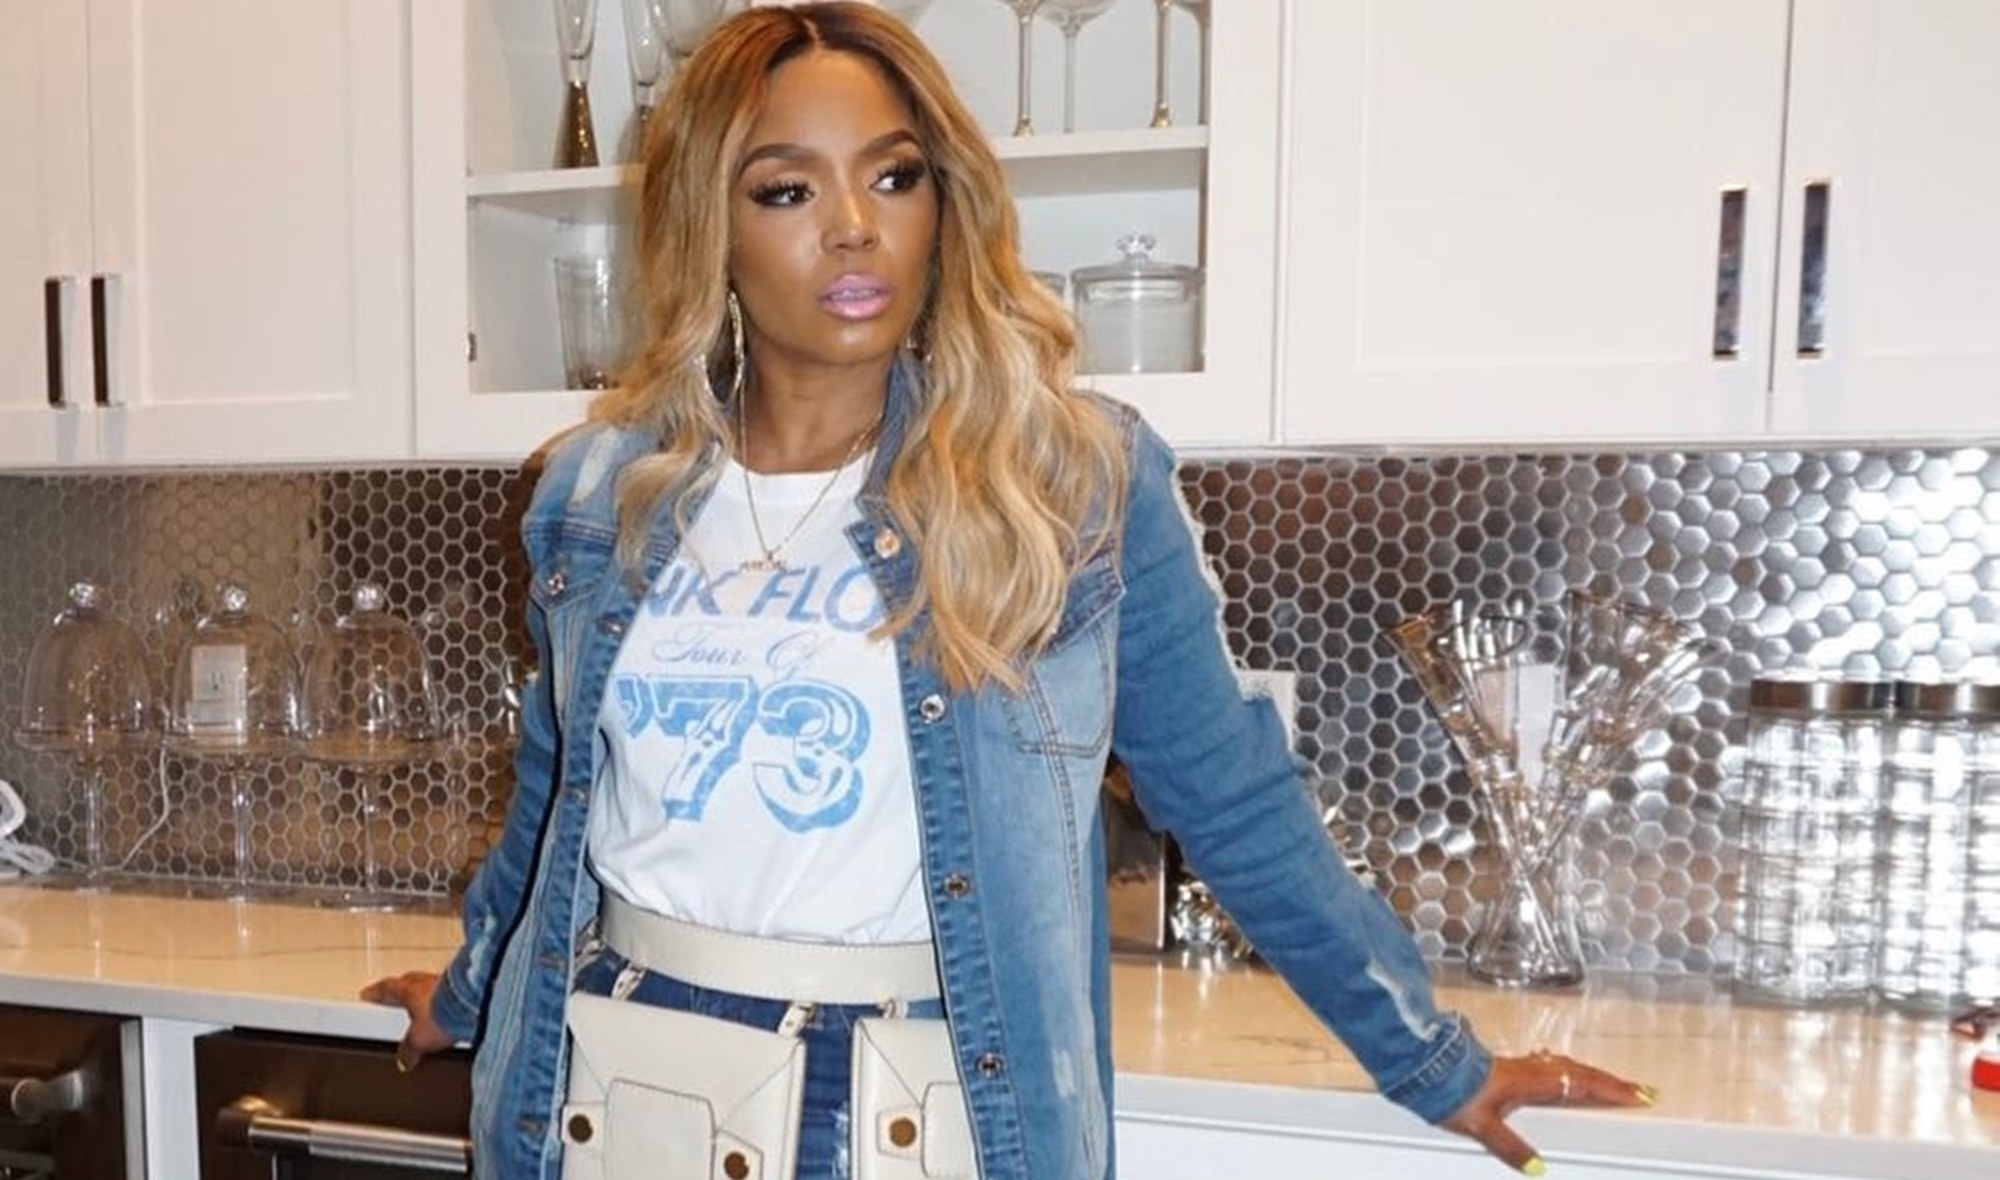 rasheeda-frost-is-flaunting-a-new-look-at-the-pressed-boutique-check-it-out-here